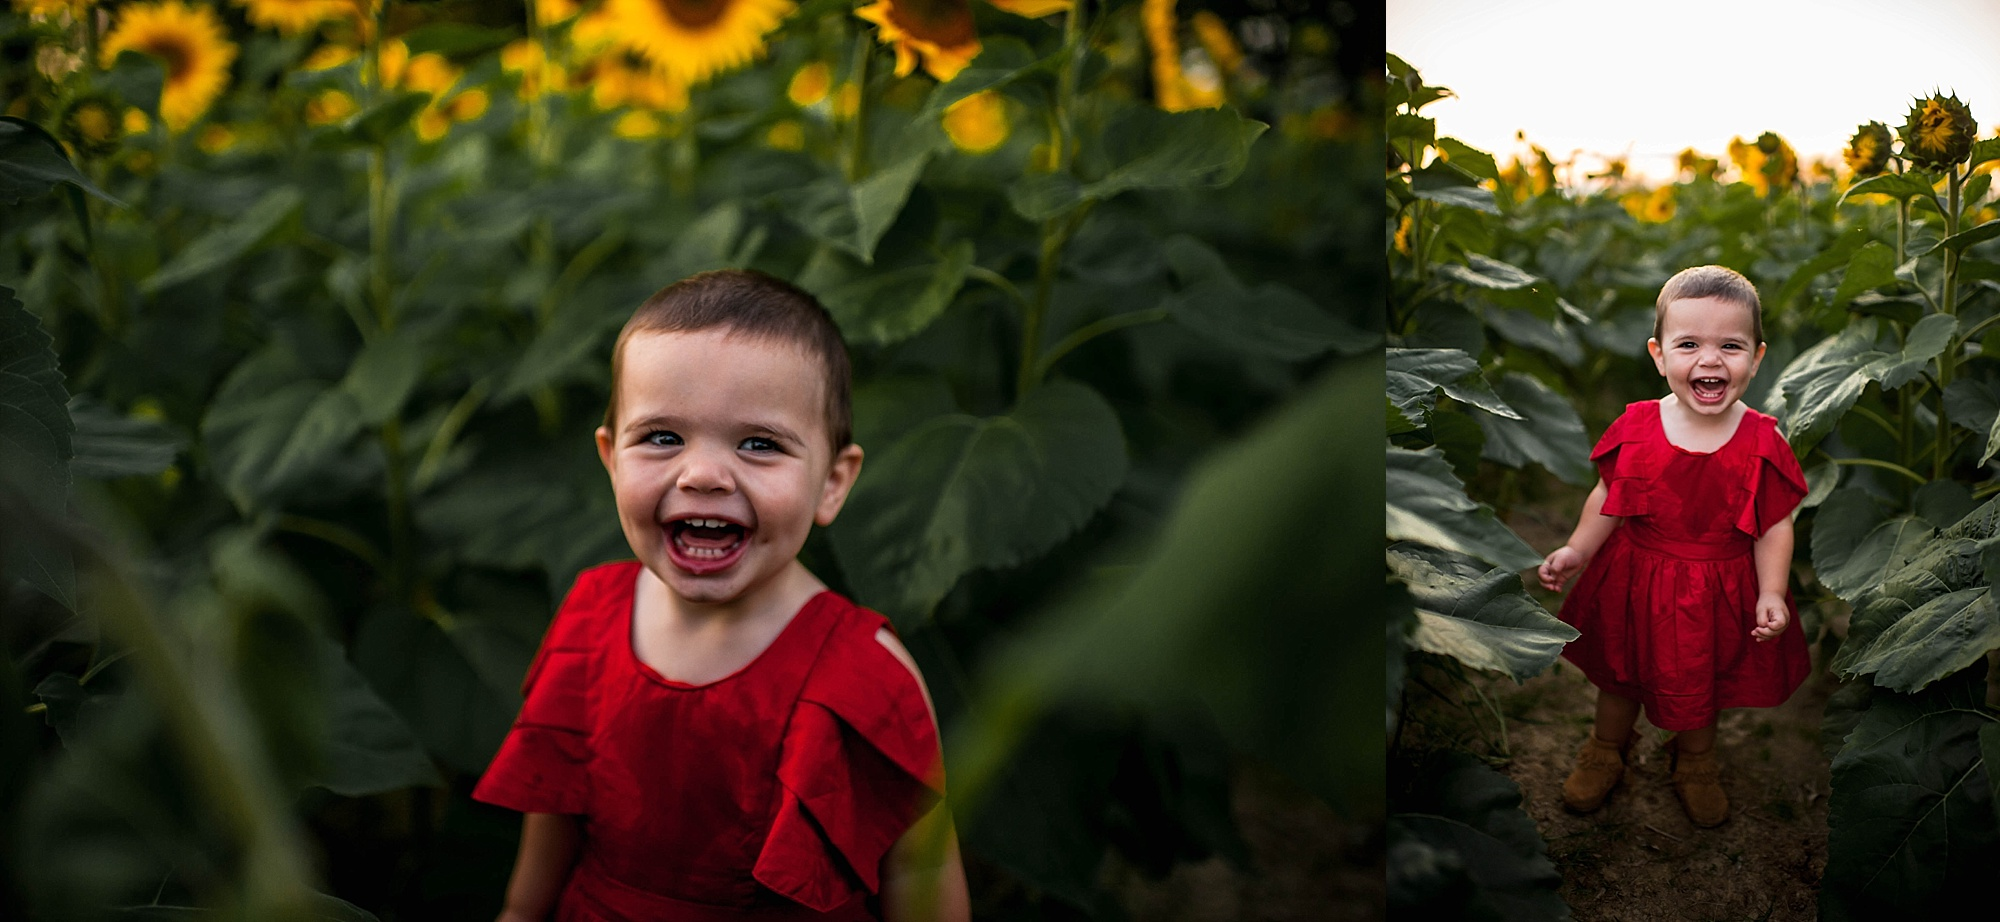 lauren-grayson-photography-cleveland-ohio-photographer-sunflower-fields-sunset-golden-hour-photo-shoot-mommy-and-me-family-child-photographer_0584.jpg